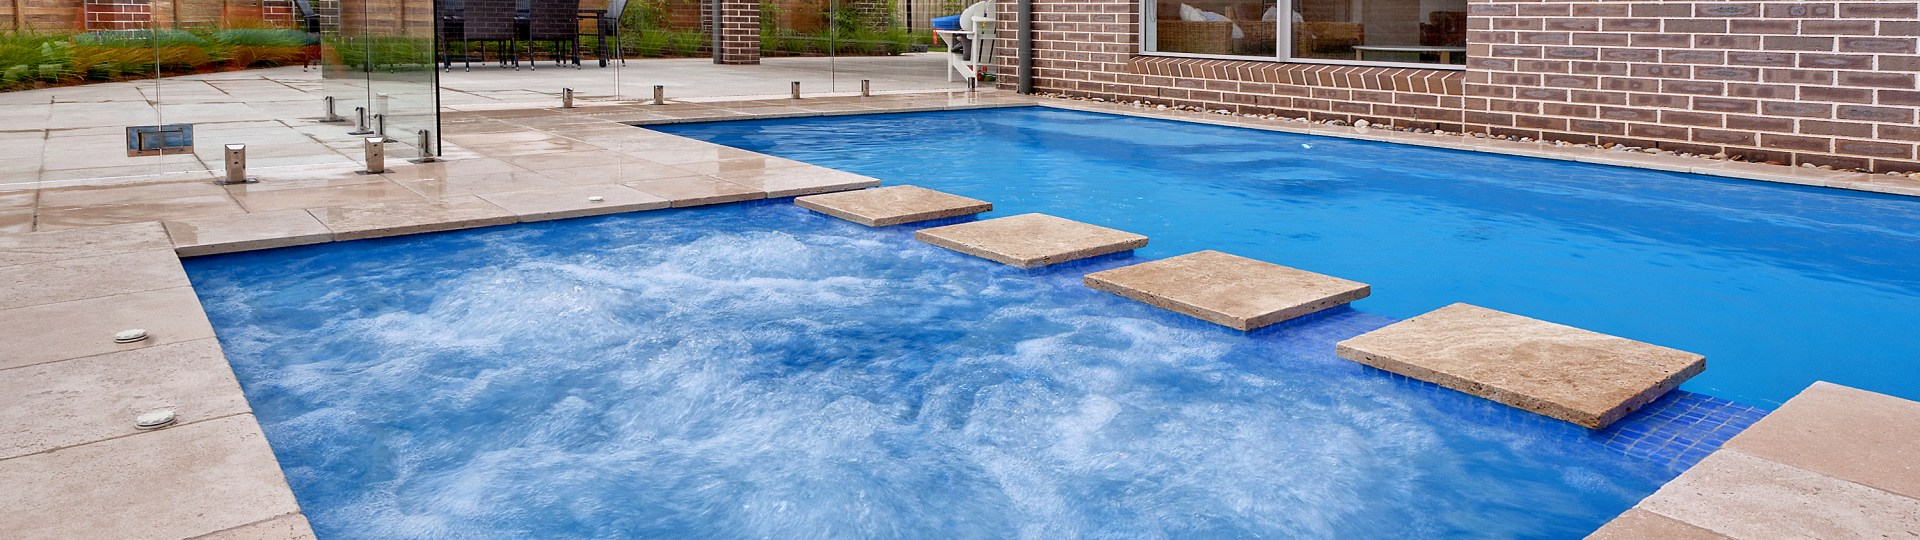 Fibreglass or concrete: What is better? | Local Pools and Spas